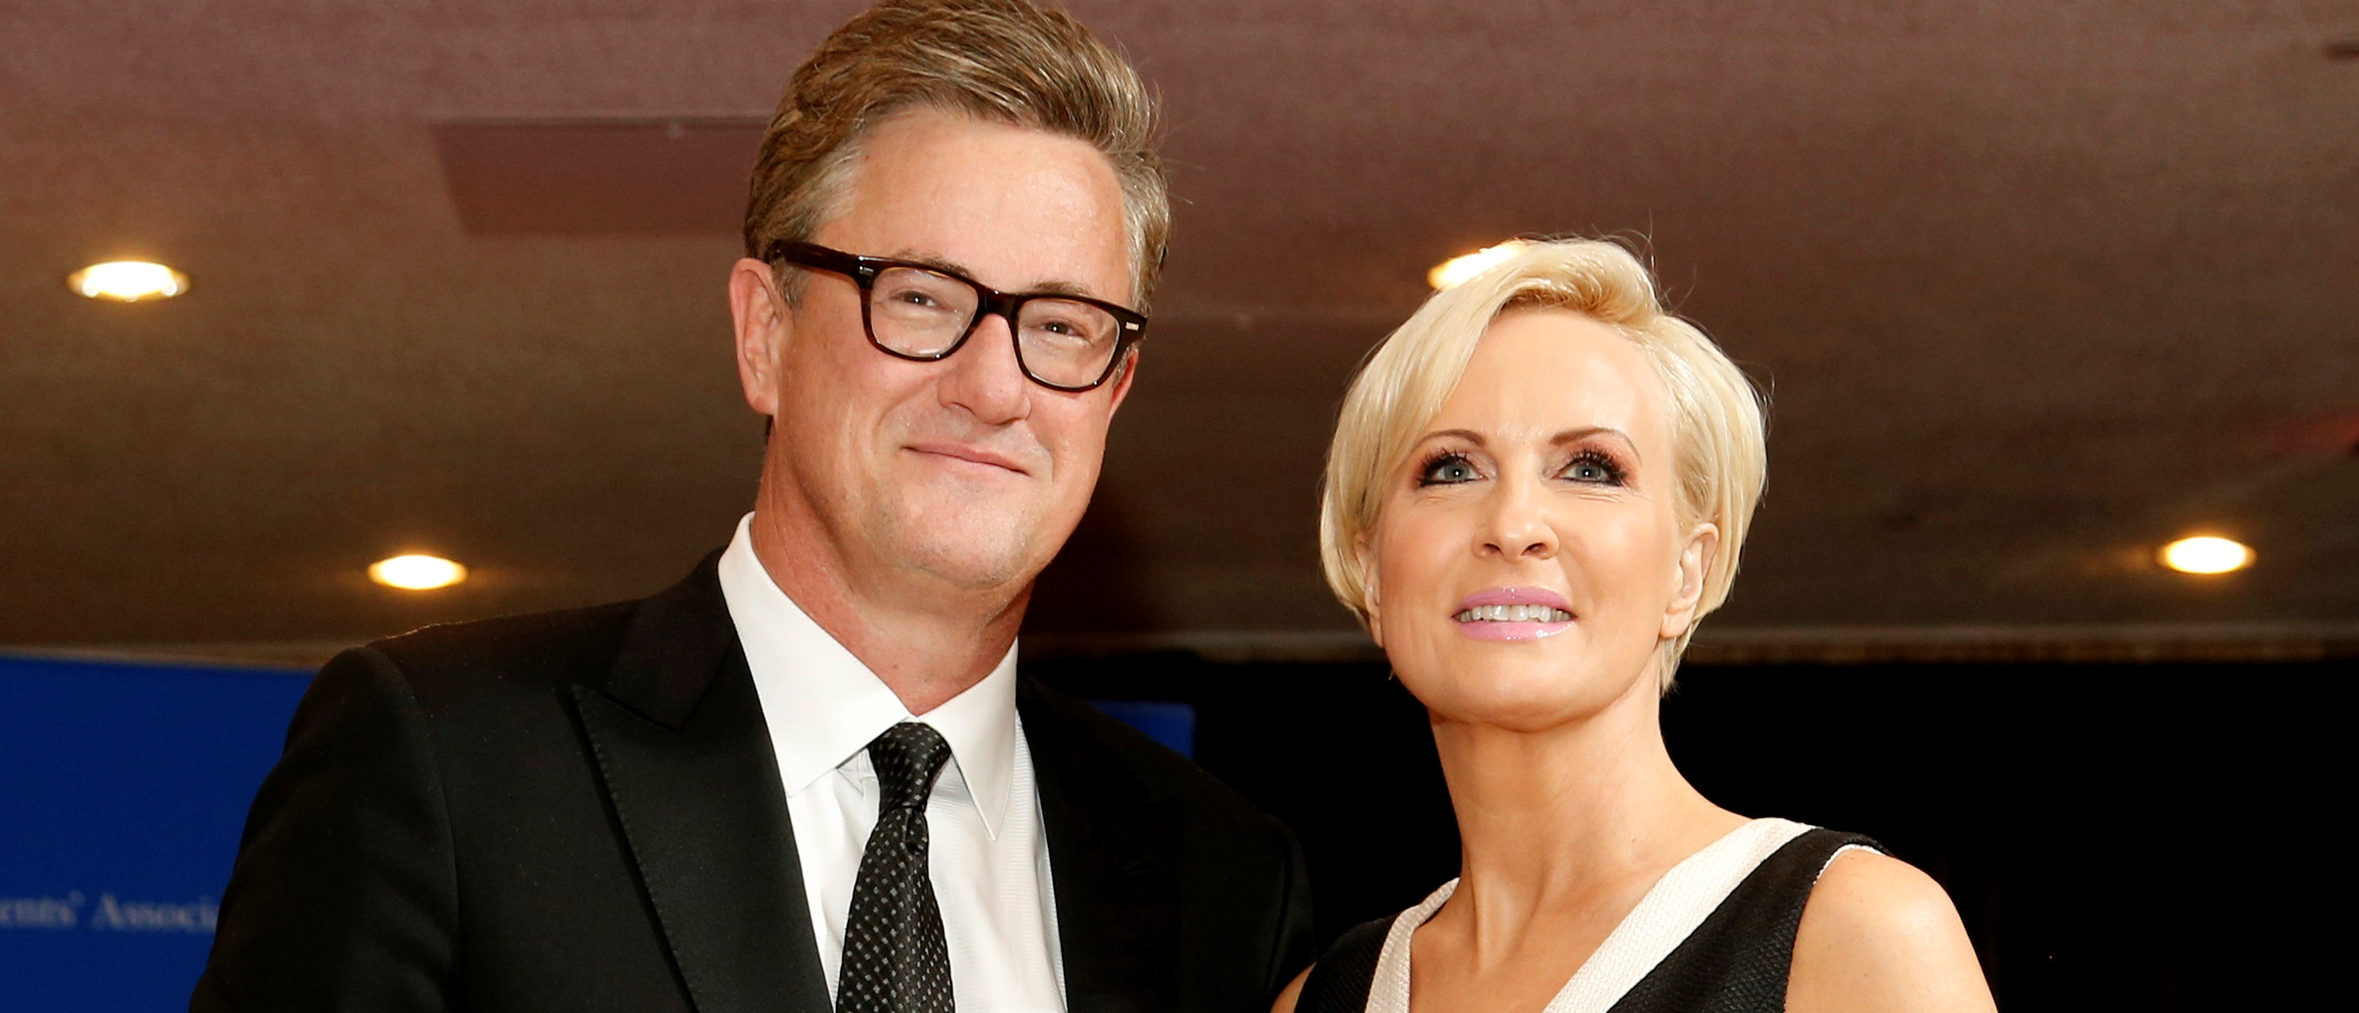 FILE PHOTO: MSNBC's Joe Scarborough and Mika Brzezinski arrive for the annual White House Correspondents' Association dinner in Washington, U.S. on April 25, 2015. REUTERS/Jonathan Ernst